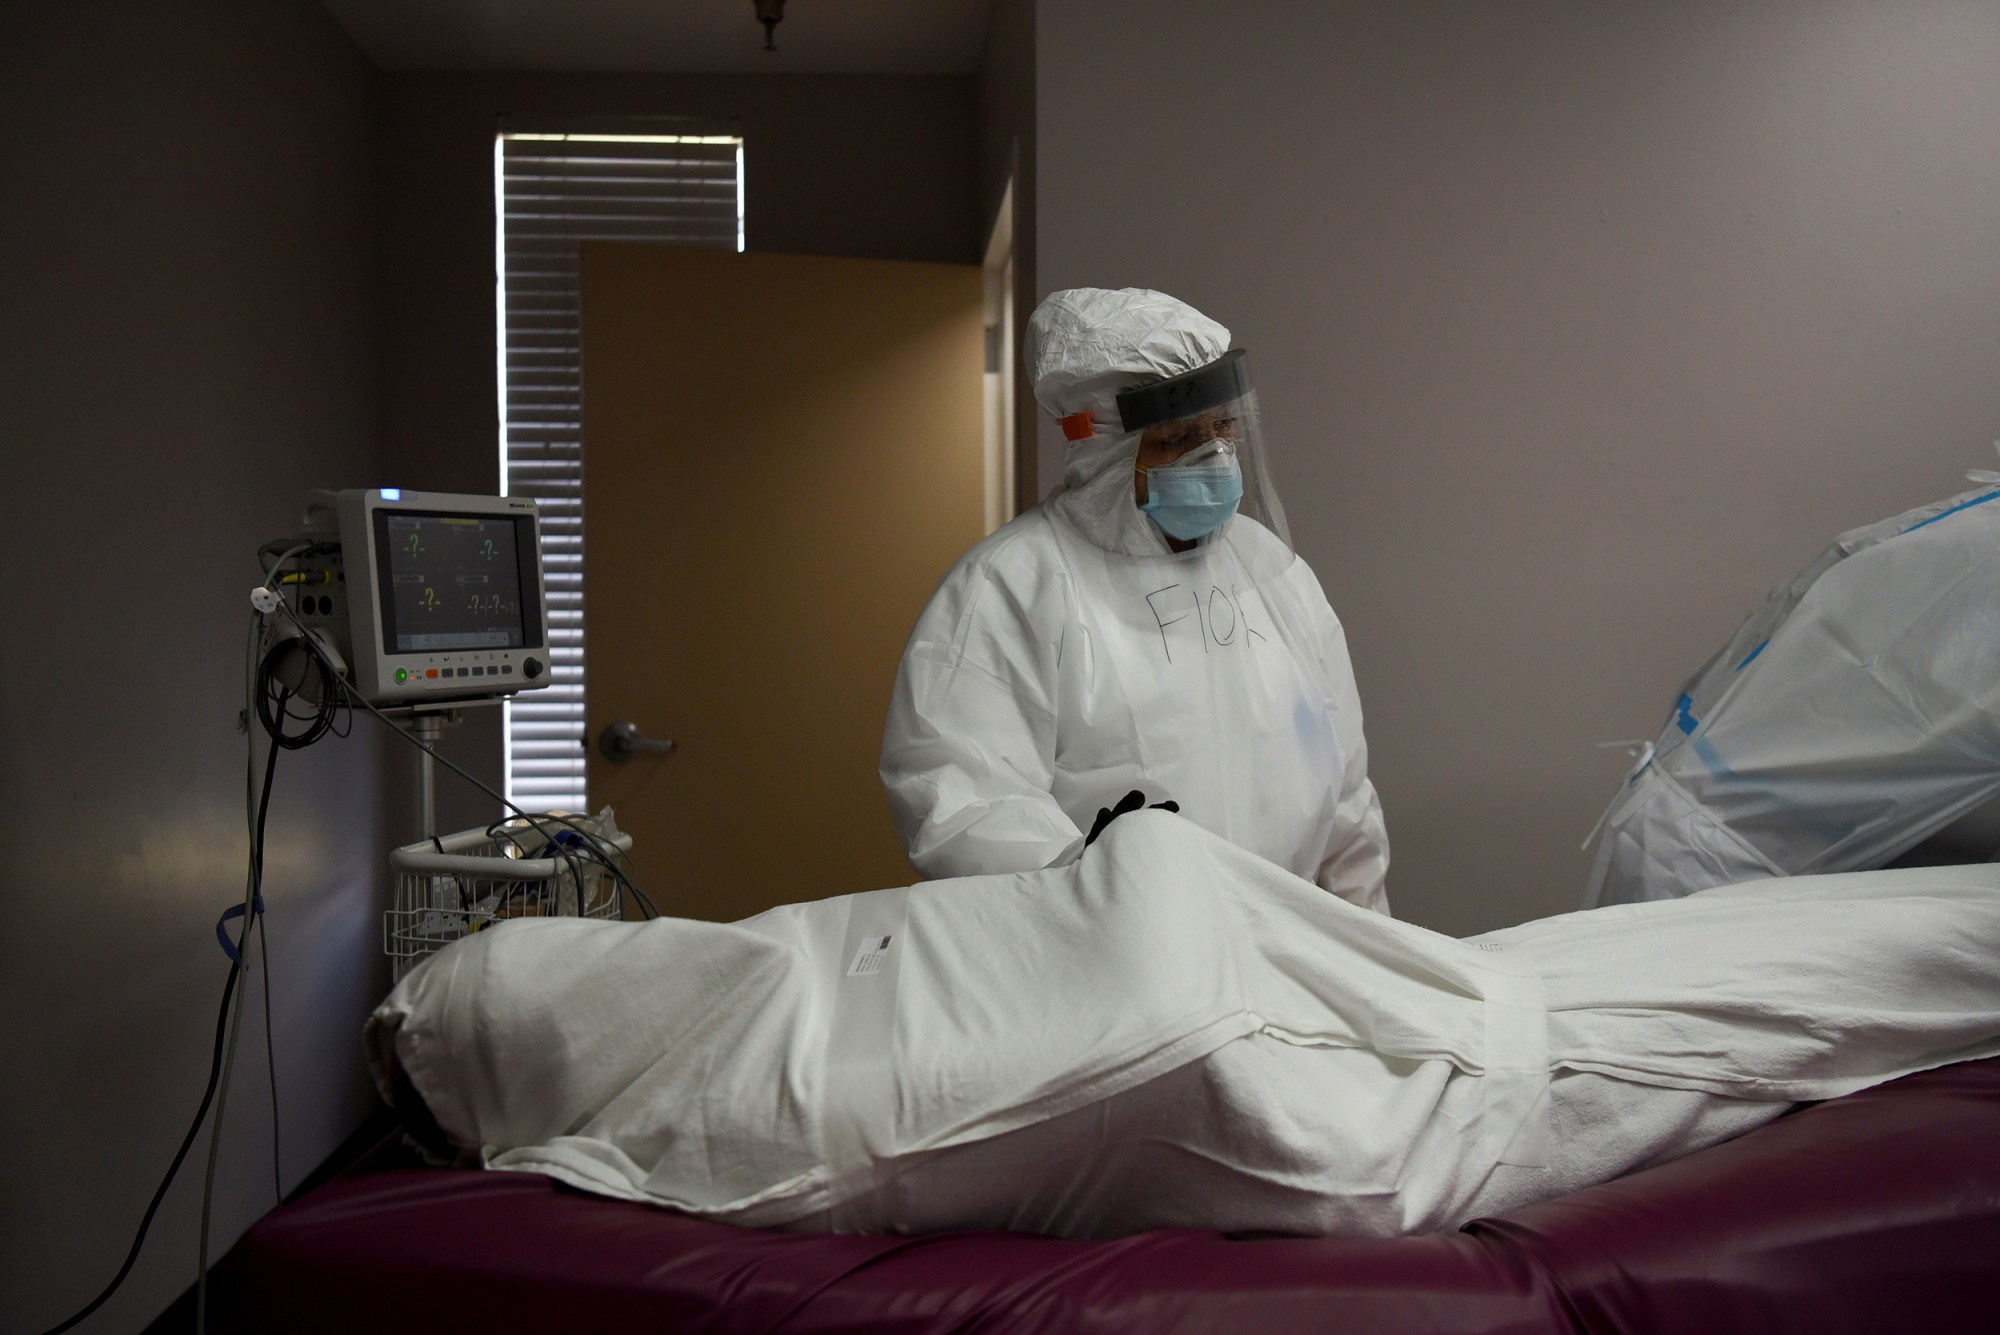 The body of a patient, who died during an intubation procedure, is prepared by Flor Trevino, 39, a nurse, to be transported to a morgue, at United Memorial Medical Center (UMMC), during the coronavirus disease (COVID-19) outbreak, in Houston, Texas, U.S., July 17, 2020. (REUTERS/Callaghan O'Hare)